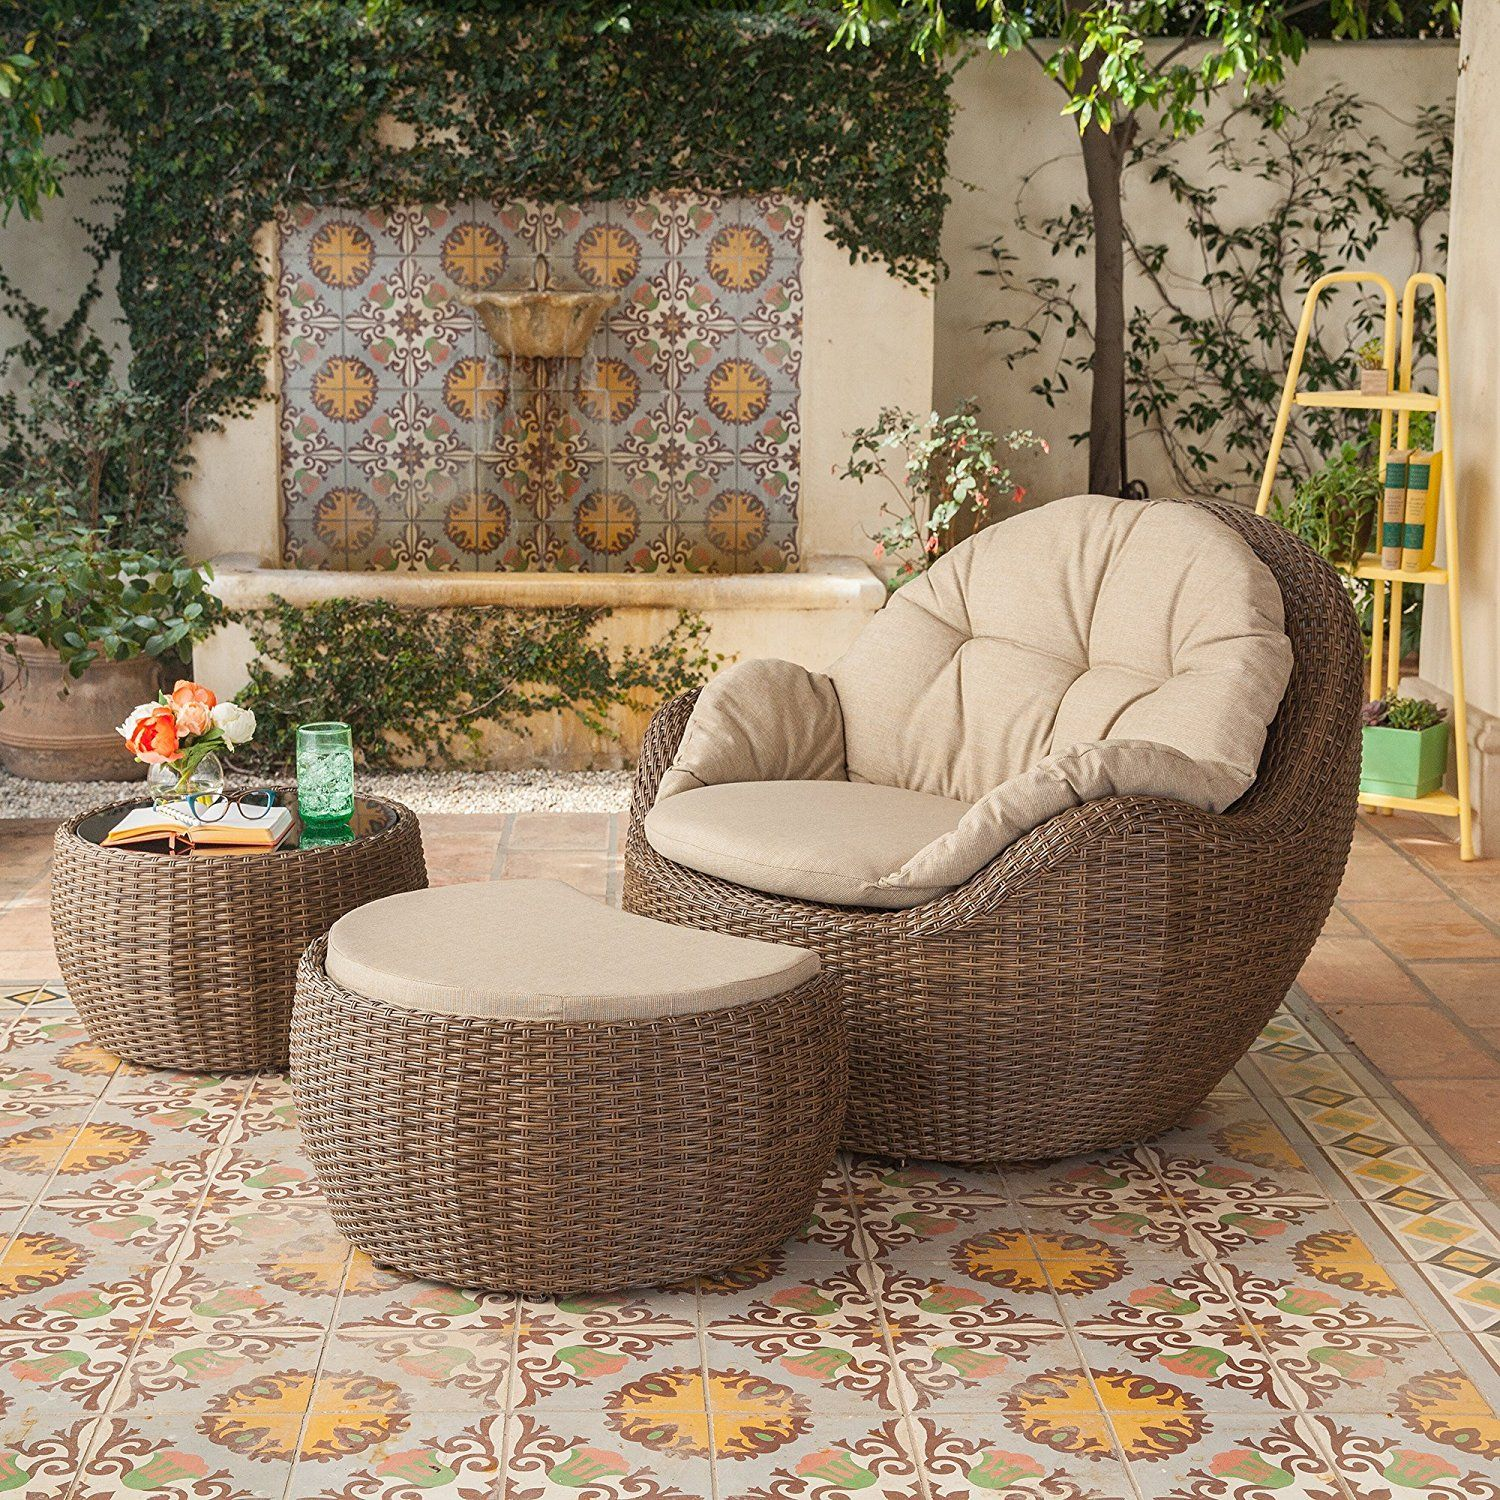 and for ottoman pin spaces cushioned small outdoor furniture with set piece space chairs lounge wicker patio garden